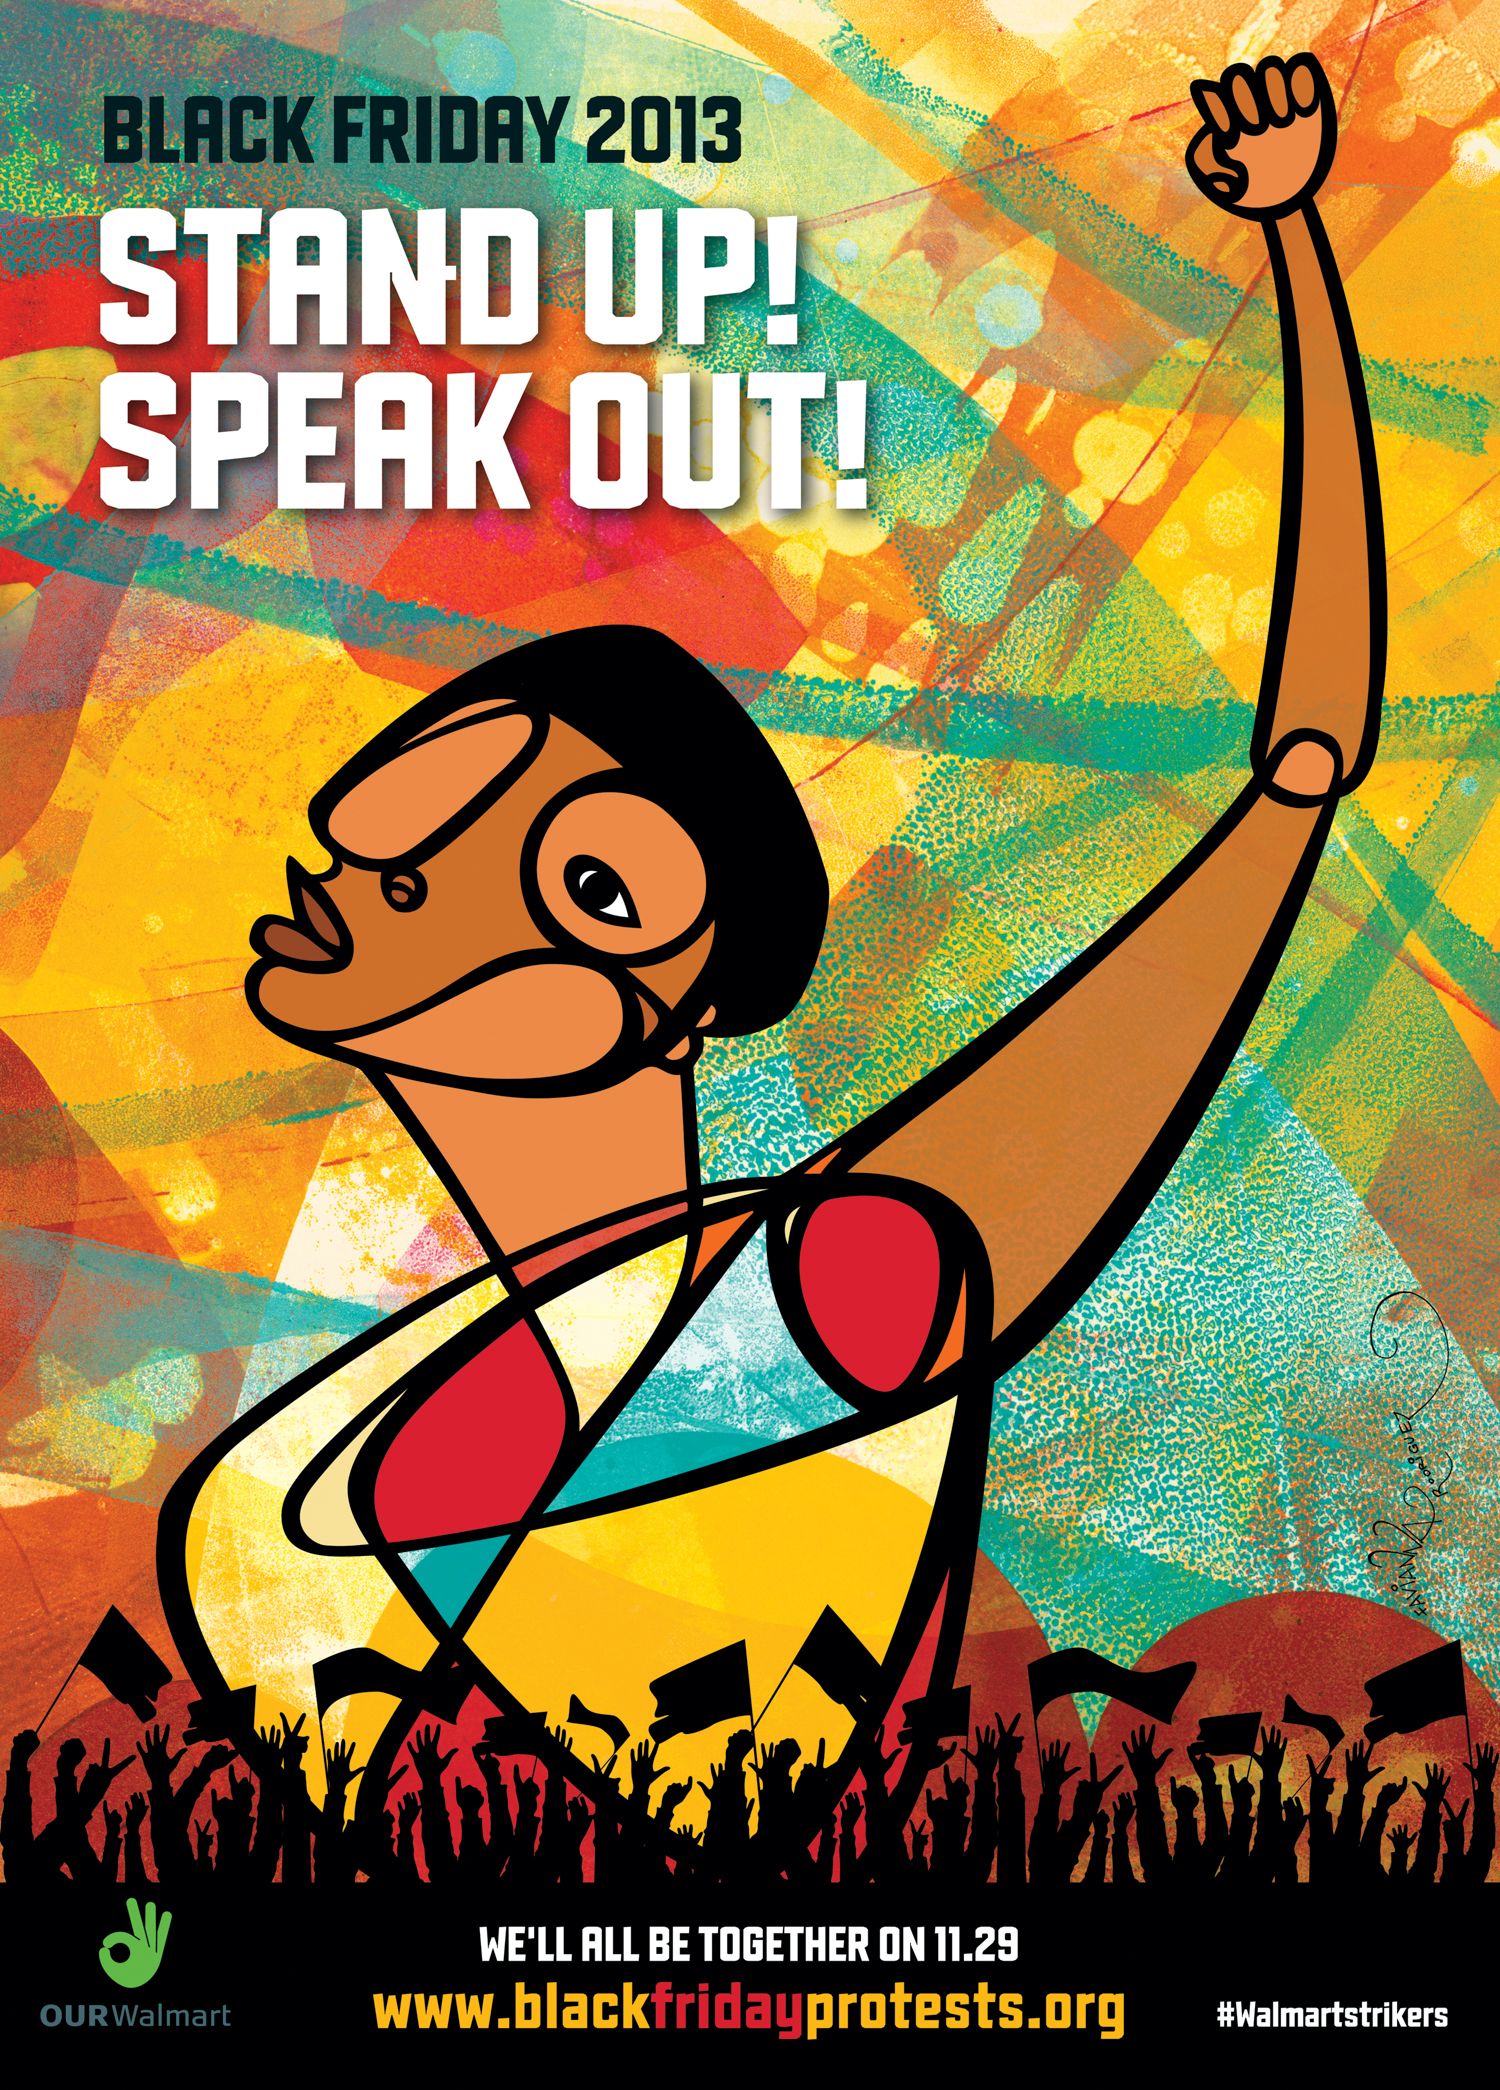 Stand Up Speak Out Black Friday 2013 Work Of Art By Favianna Rodriguez